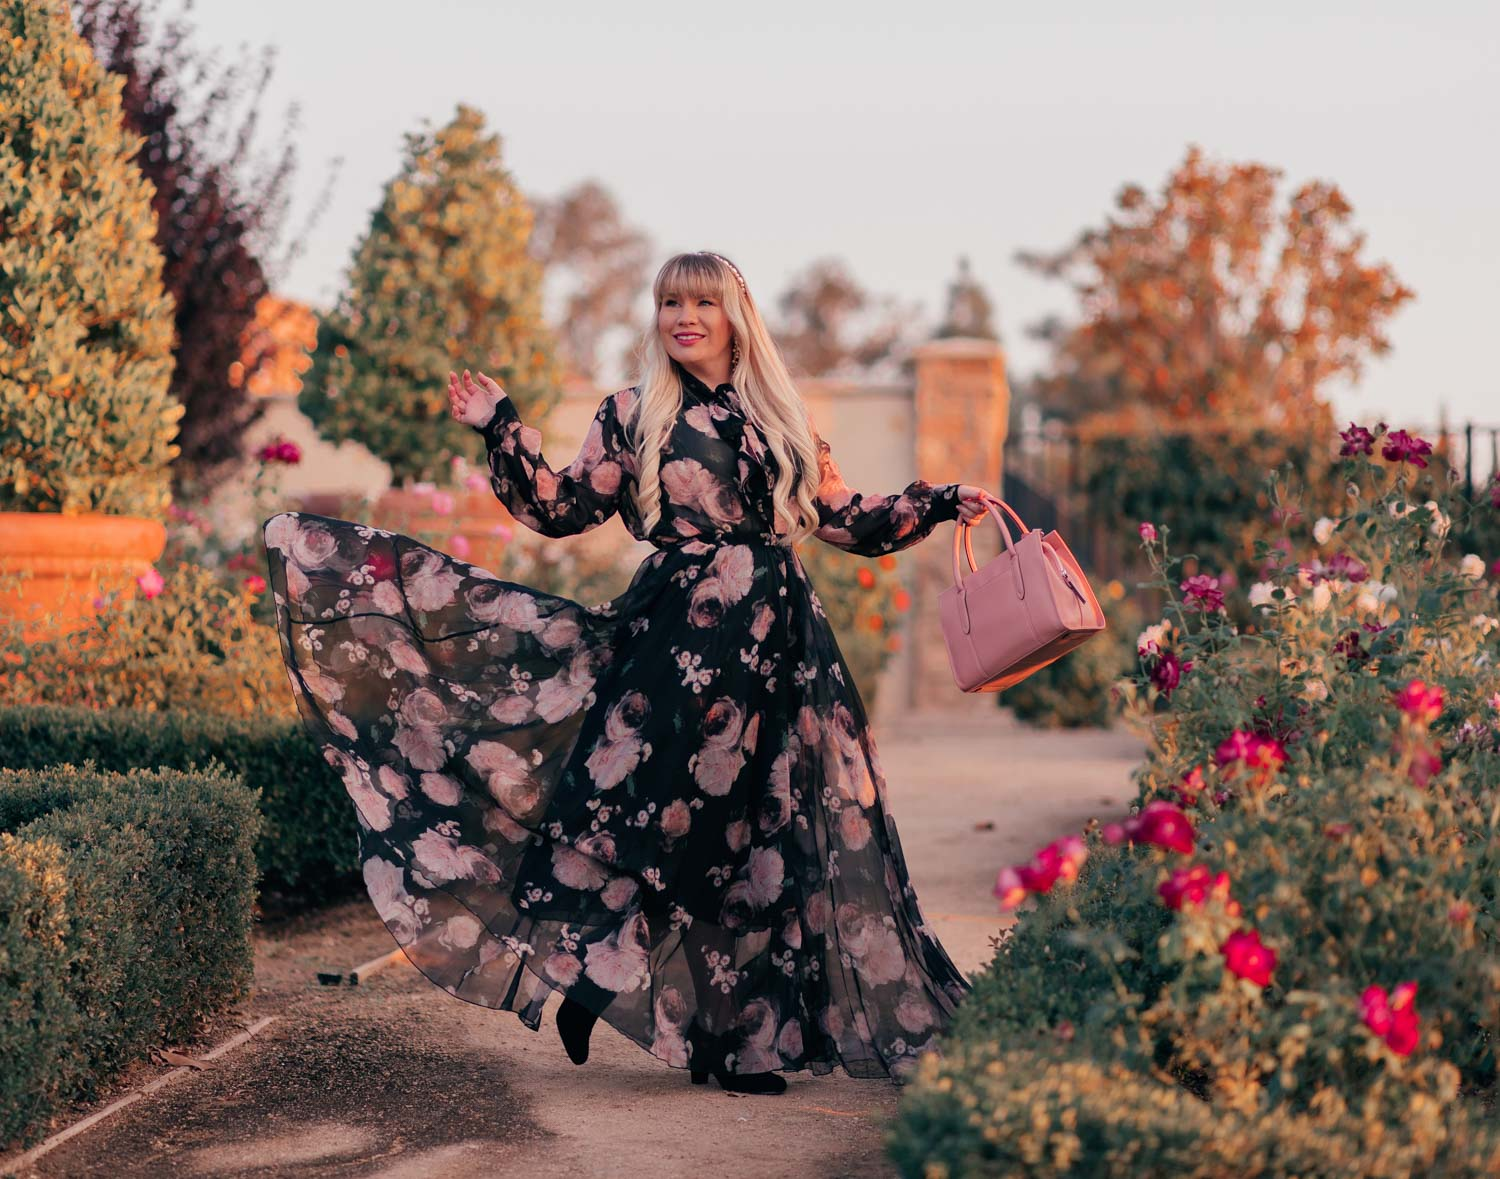 Fashion Blogger Elizabeth Hugen of Lizzie in Lace shares an aesthetic outfit idea with a black floral dress for fall